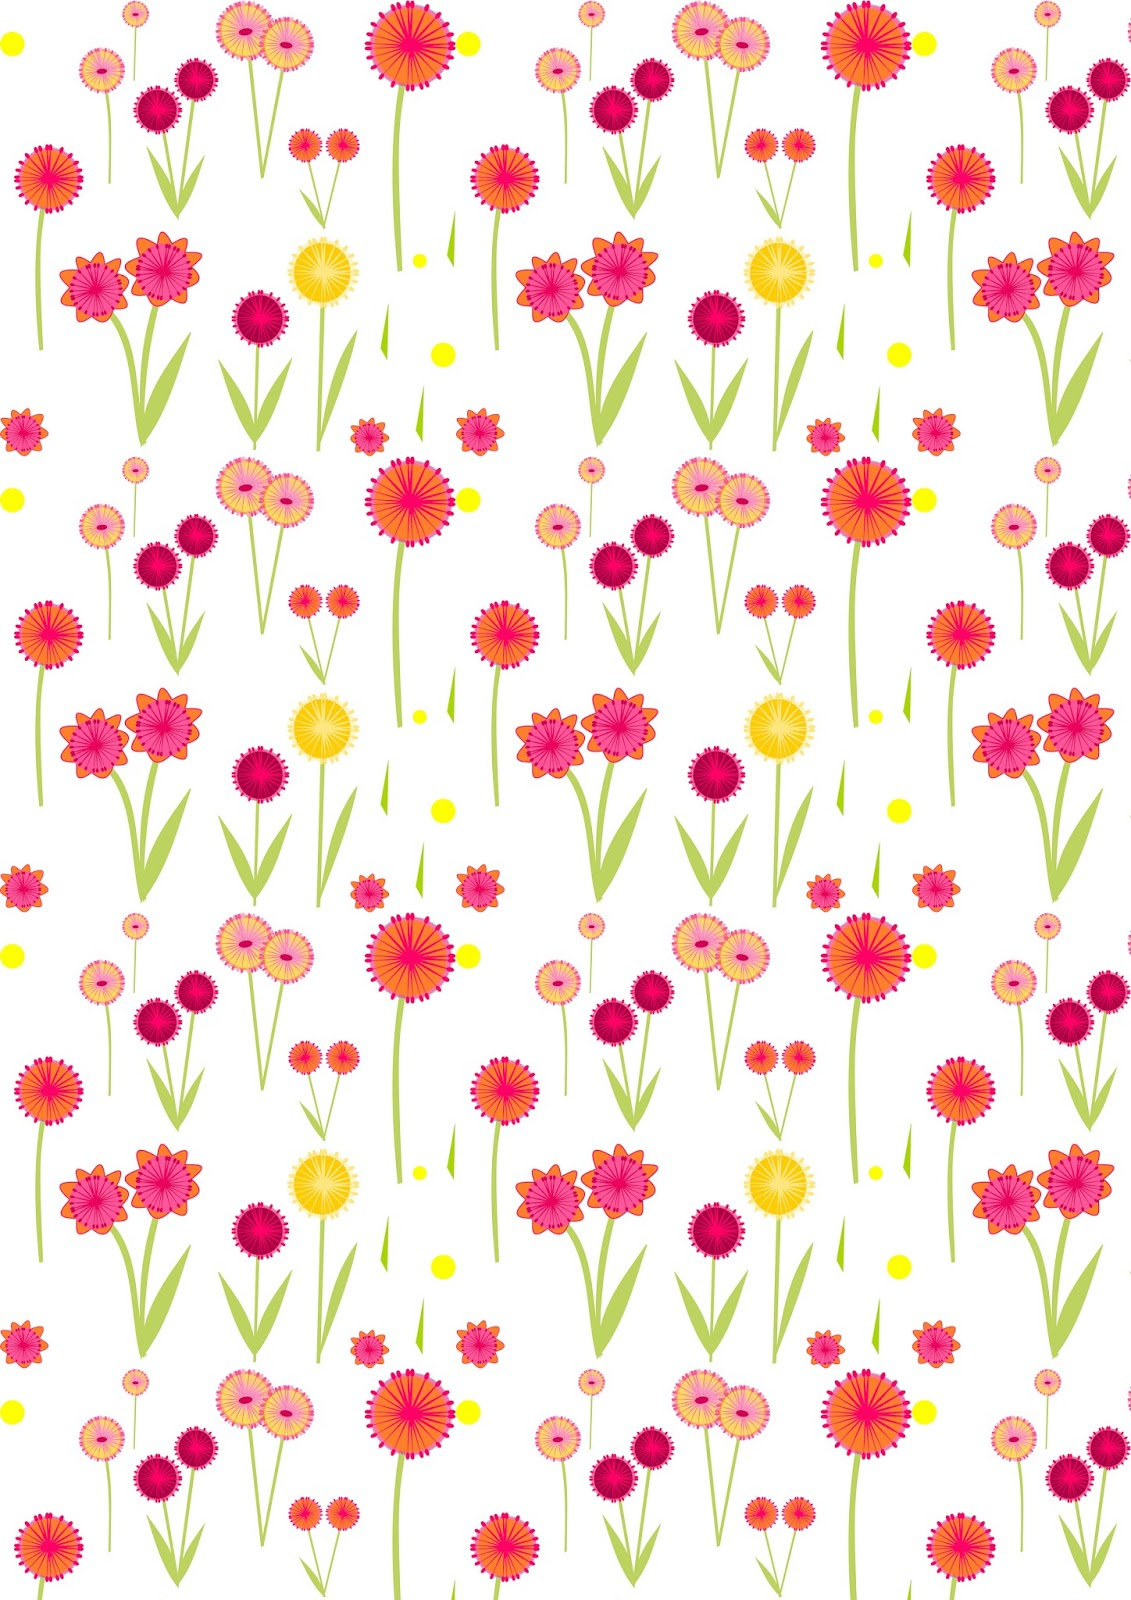 It is an image of Priceless Free Scrapbook Paper Printable